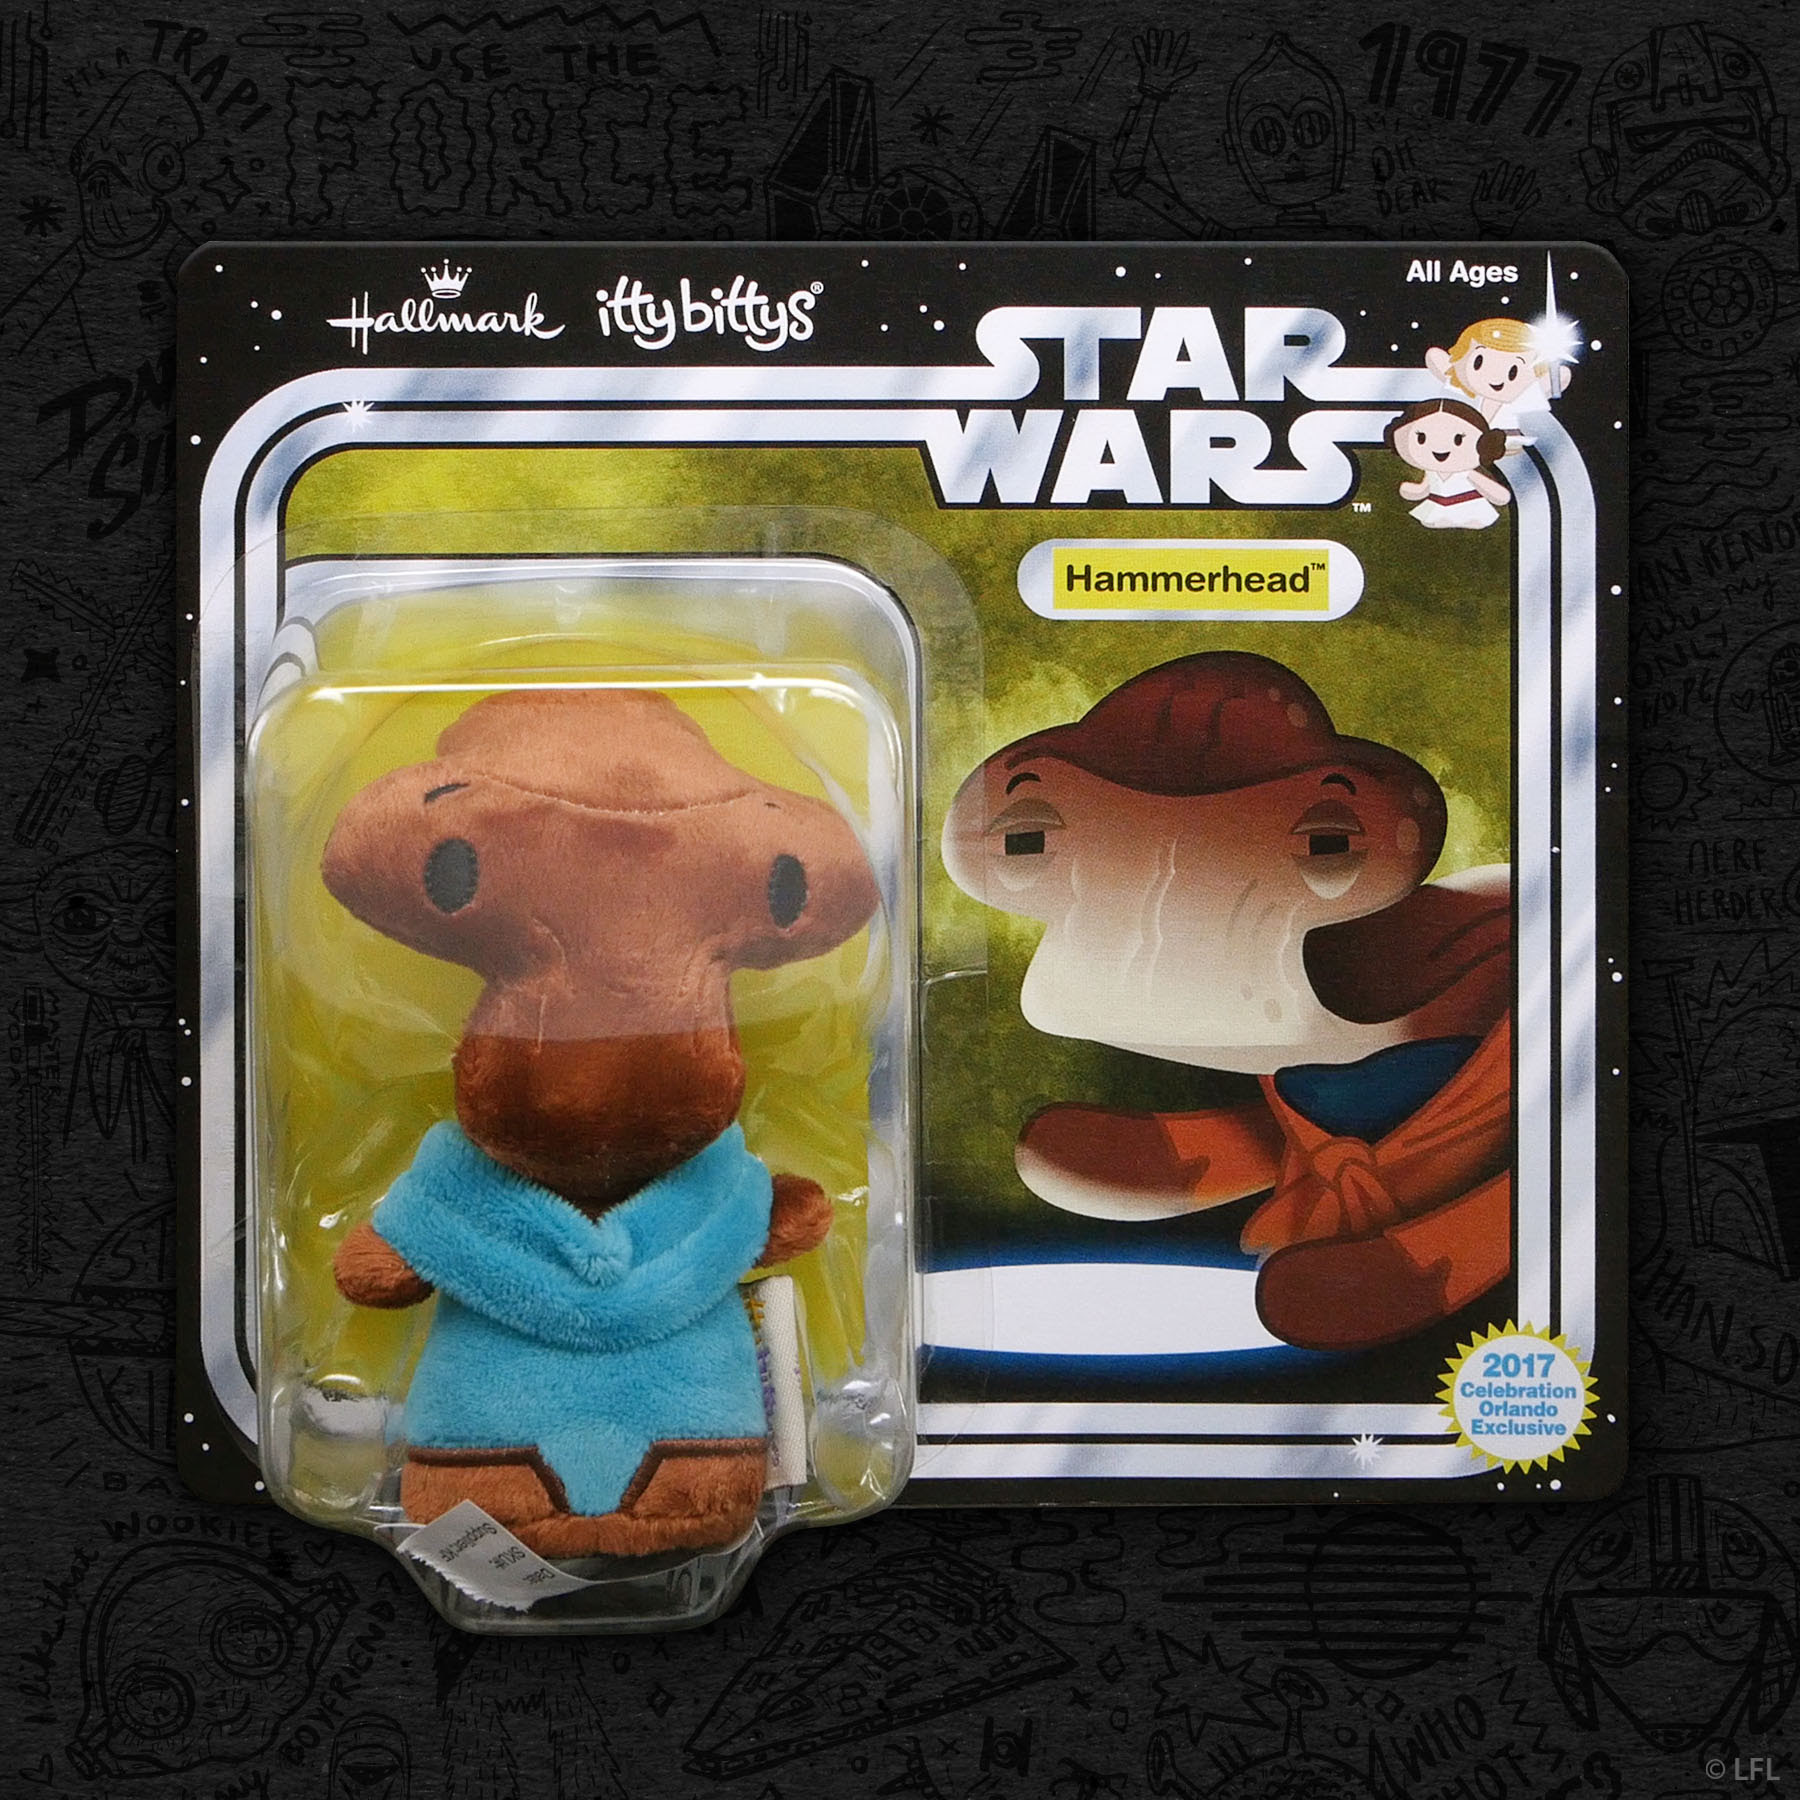 Star Wars Celebration Orlando: Itty Bittys